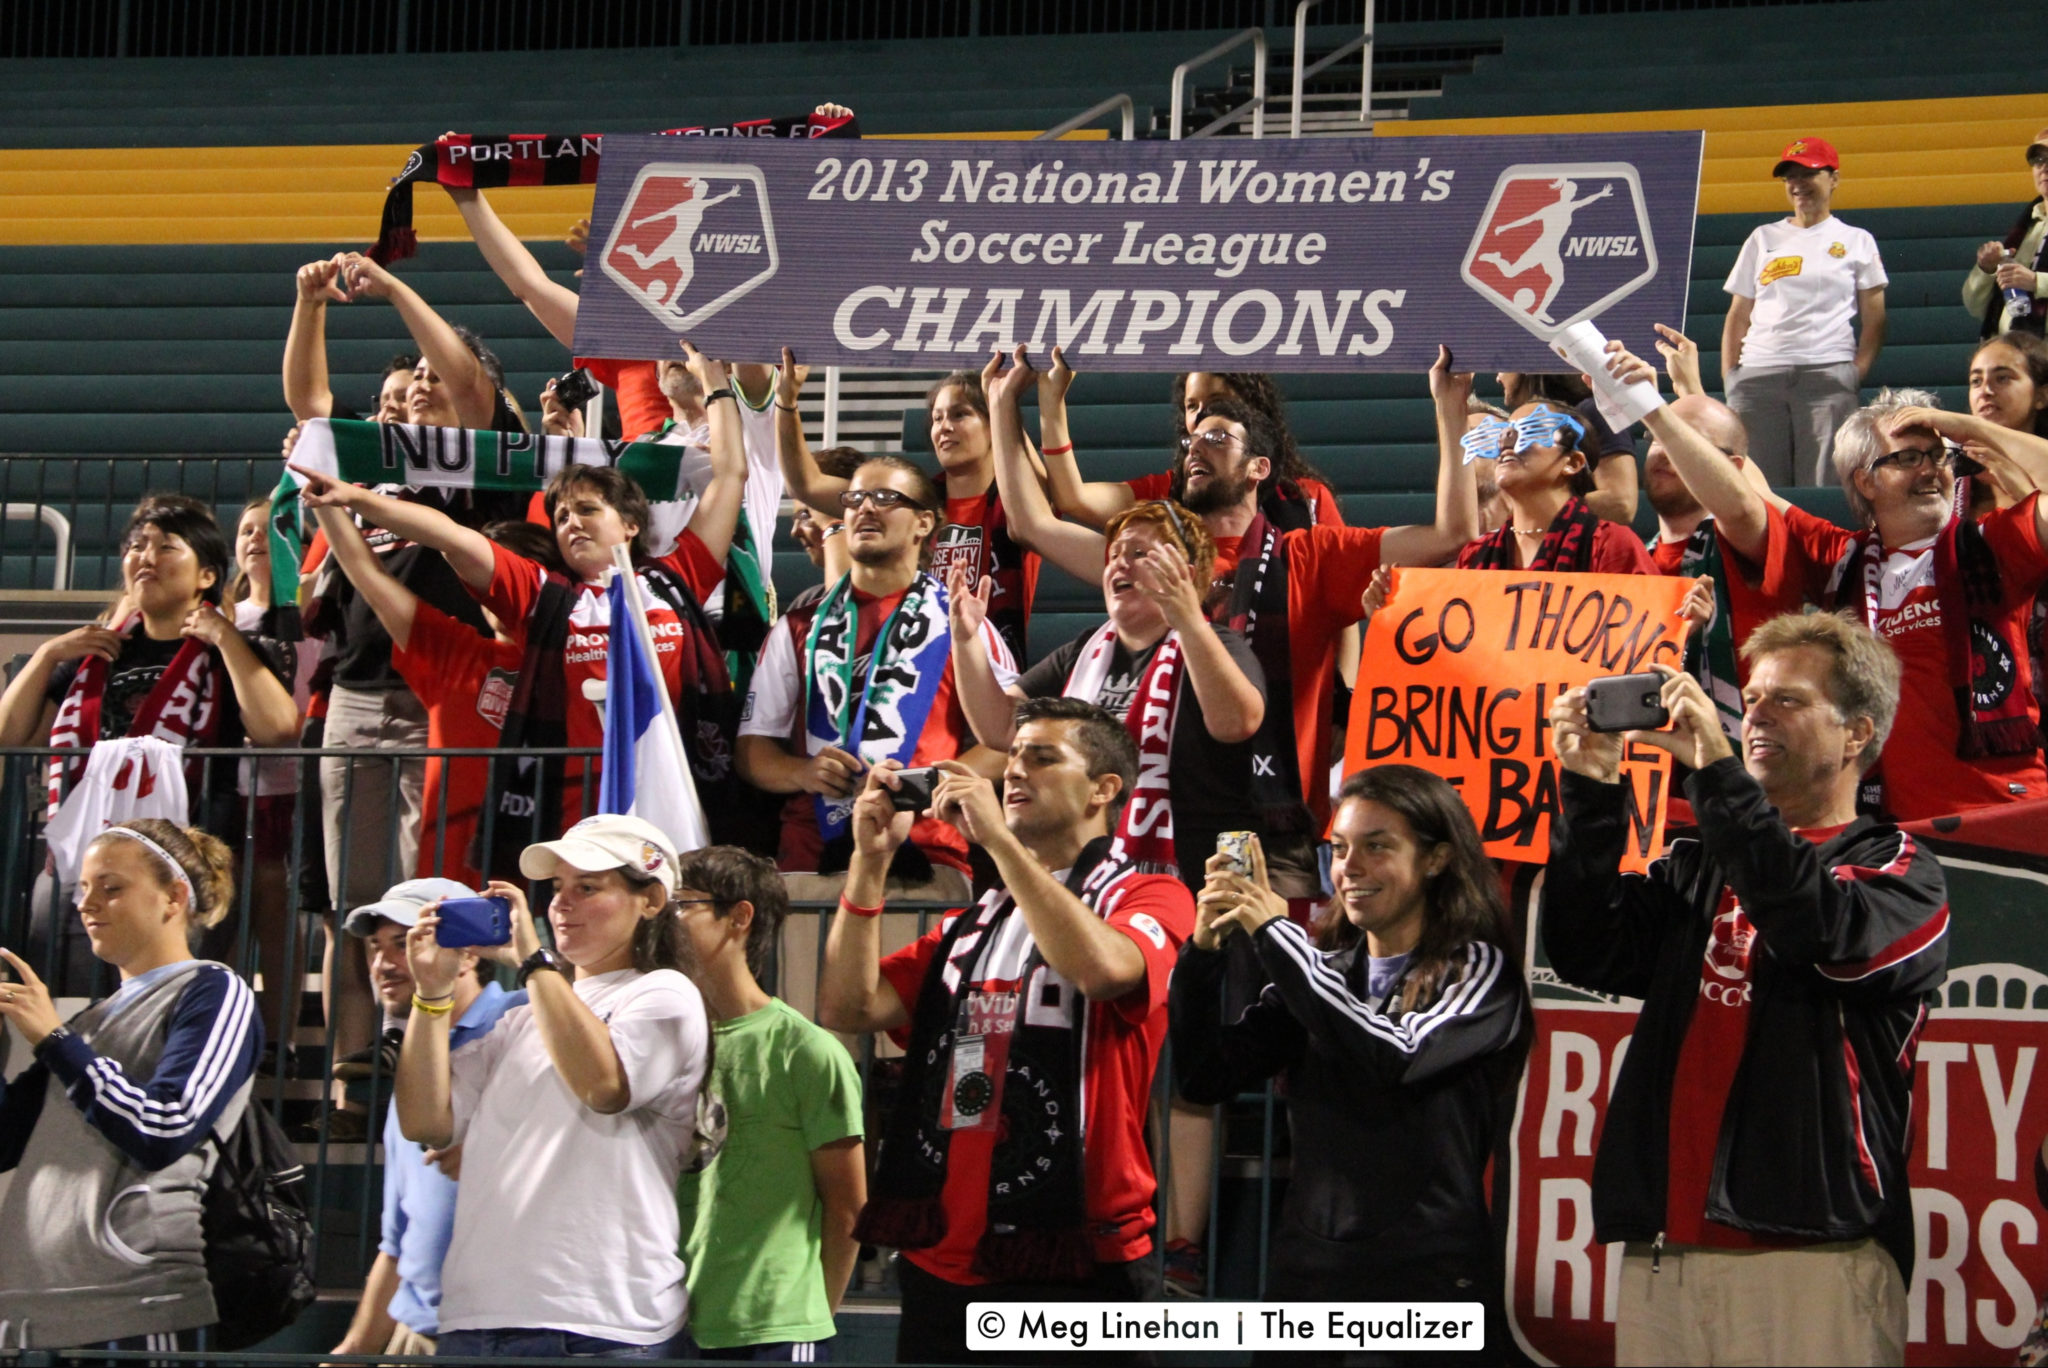 The Rose City Riveters celebrate Portland Thorns FC's win at the 2013 NWSL Championship (photo copyright Meg Linehan for The Equalizer.)